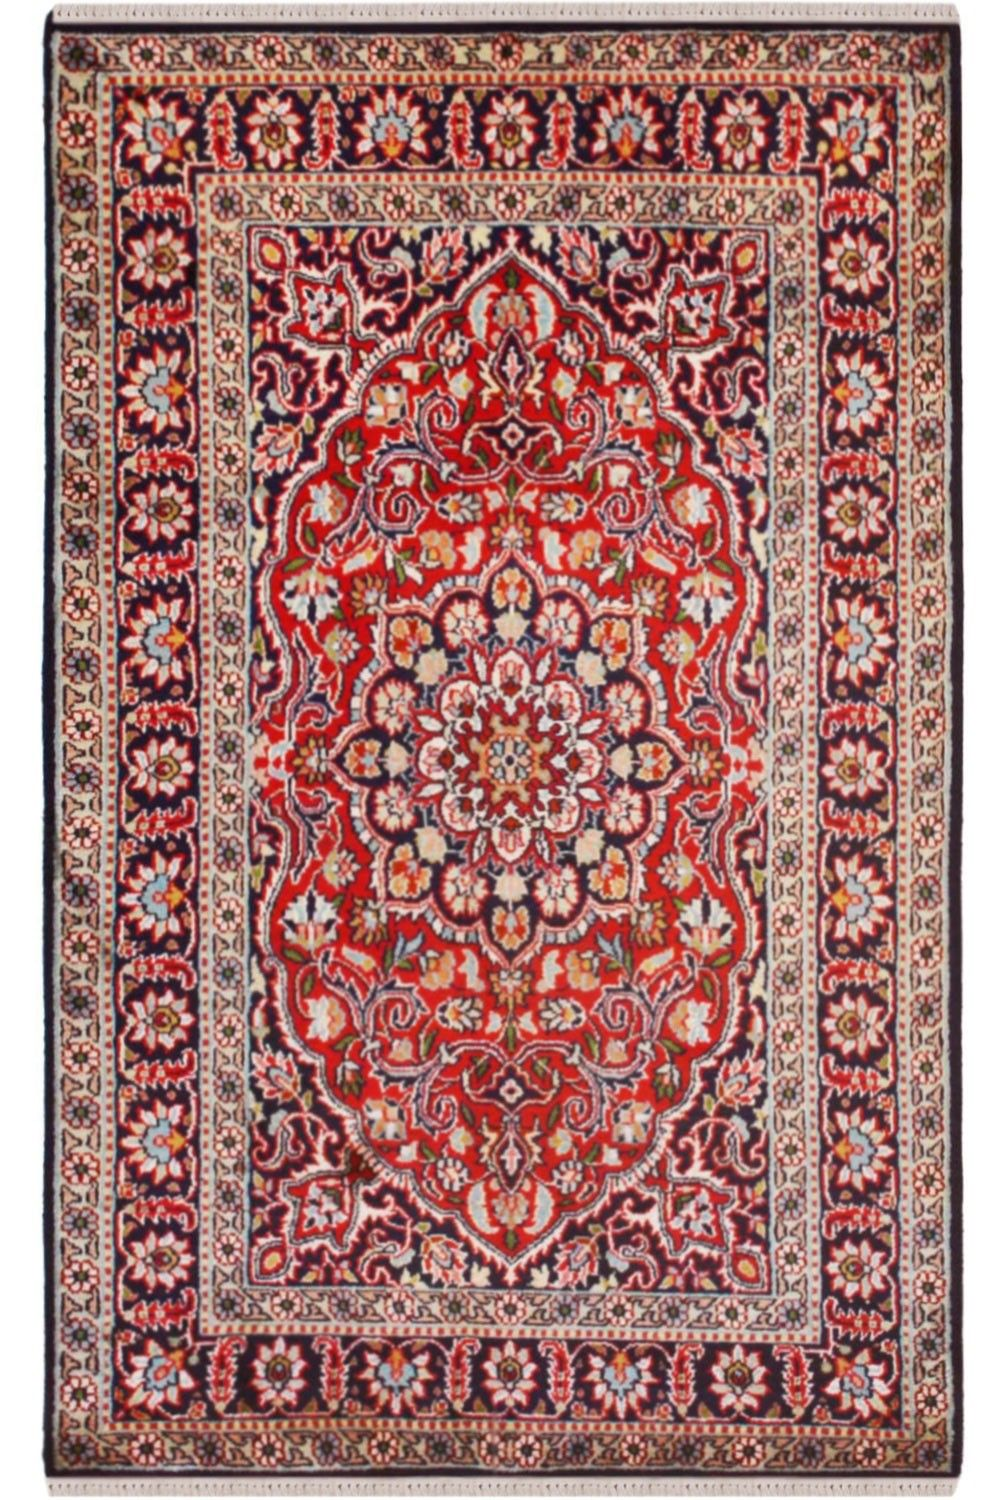 One Of A Kind Patte Kashan Design Rug 100 Handmade In Kashmir Silk On